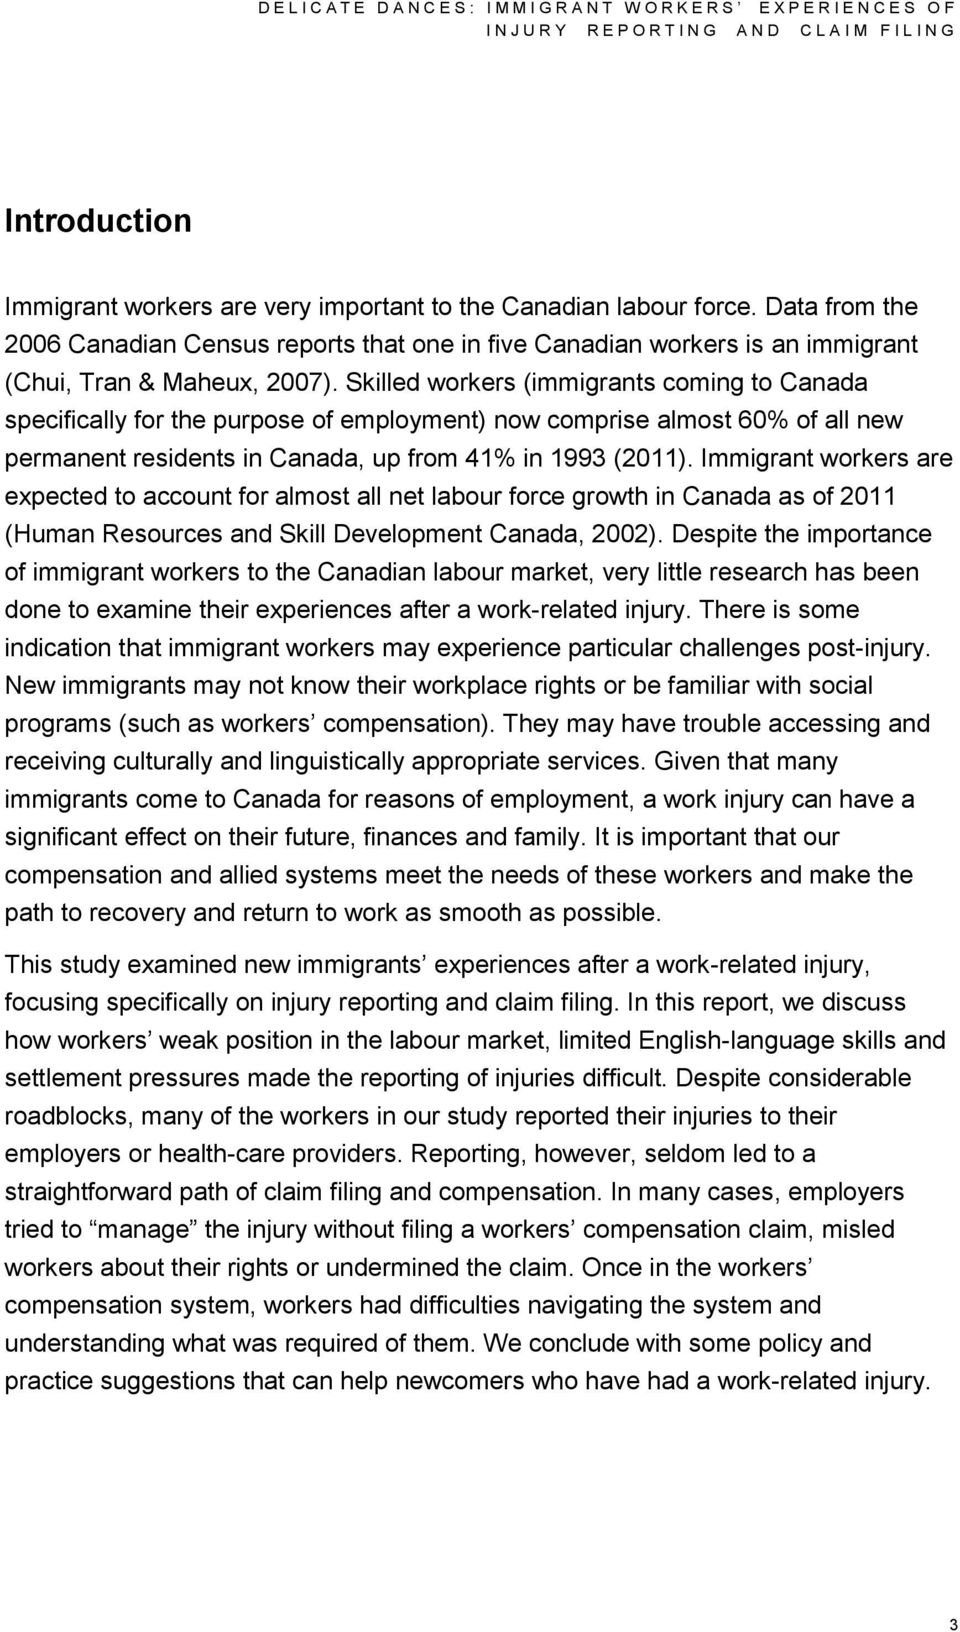 Skilled workers (immigrants coming to Canada specifically for the purpose of employment) now comprise almost 60% of all new permanent residents in Canada, up from 41% in 1993 (2011).